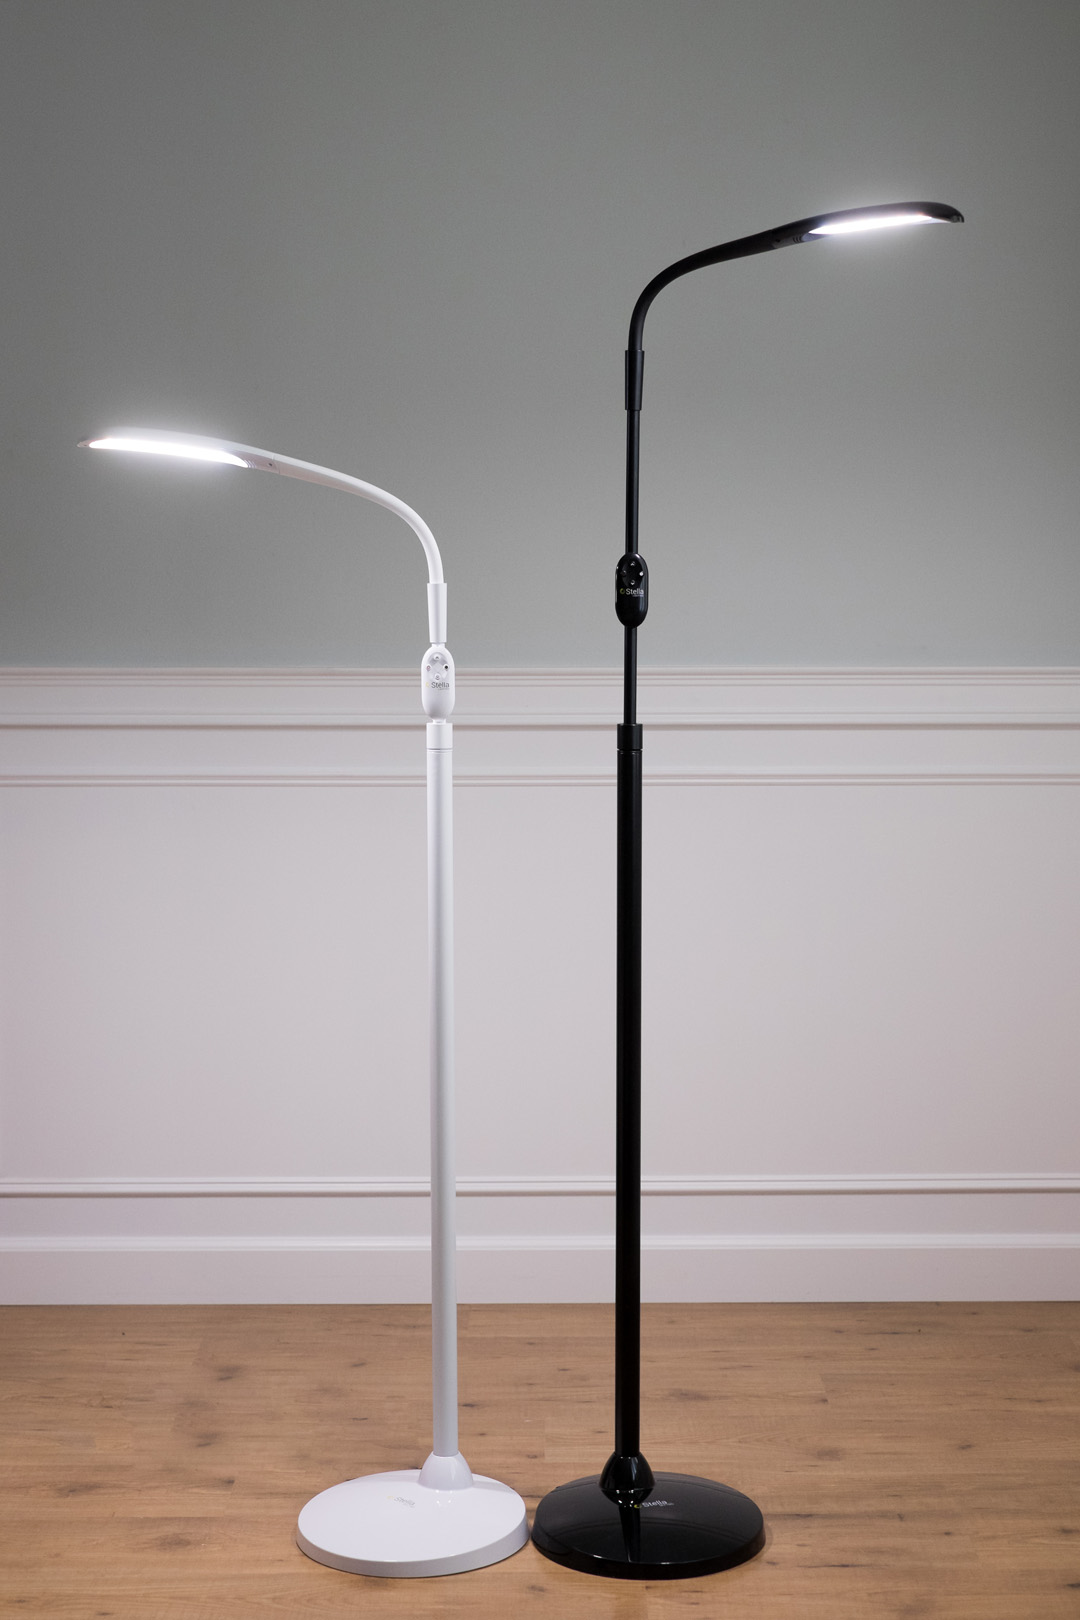 Stella Sky Two floor lamp